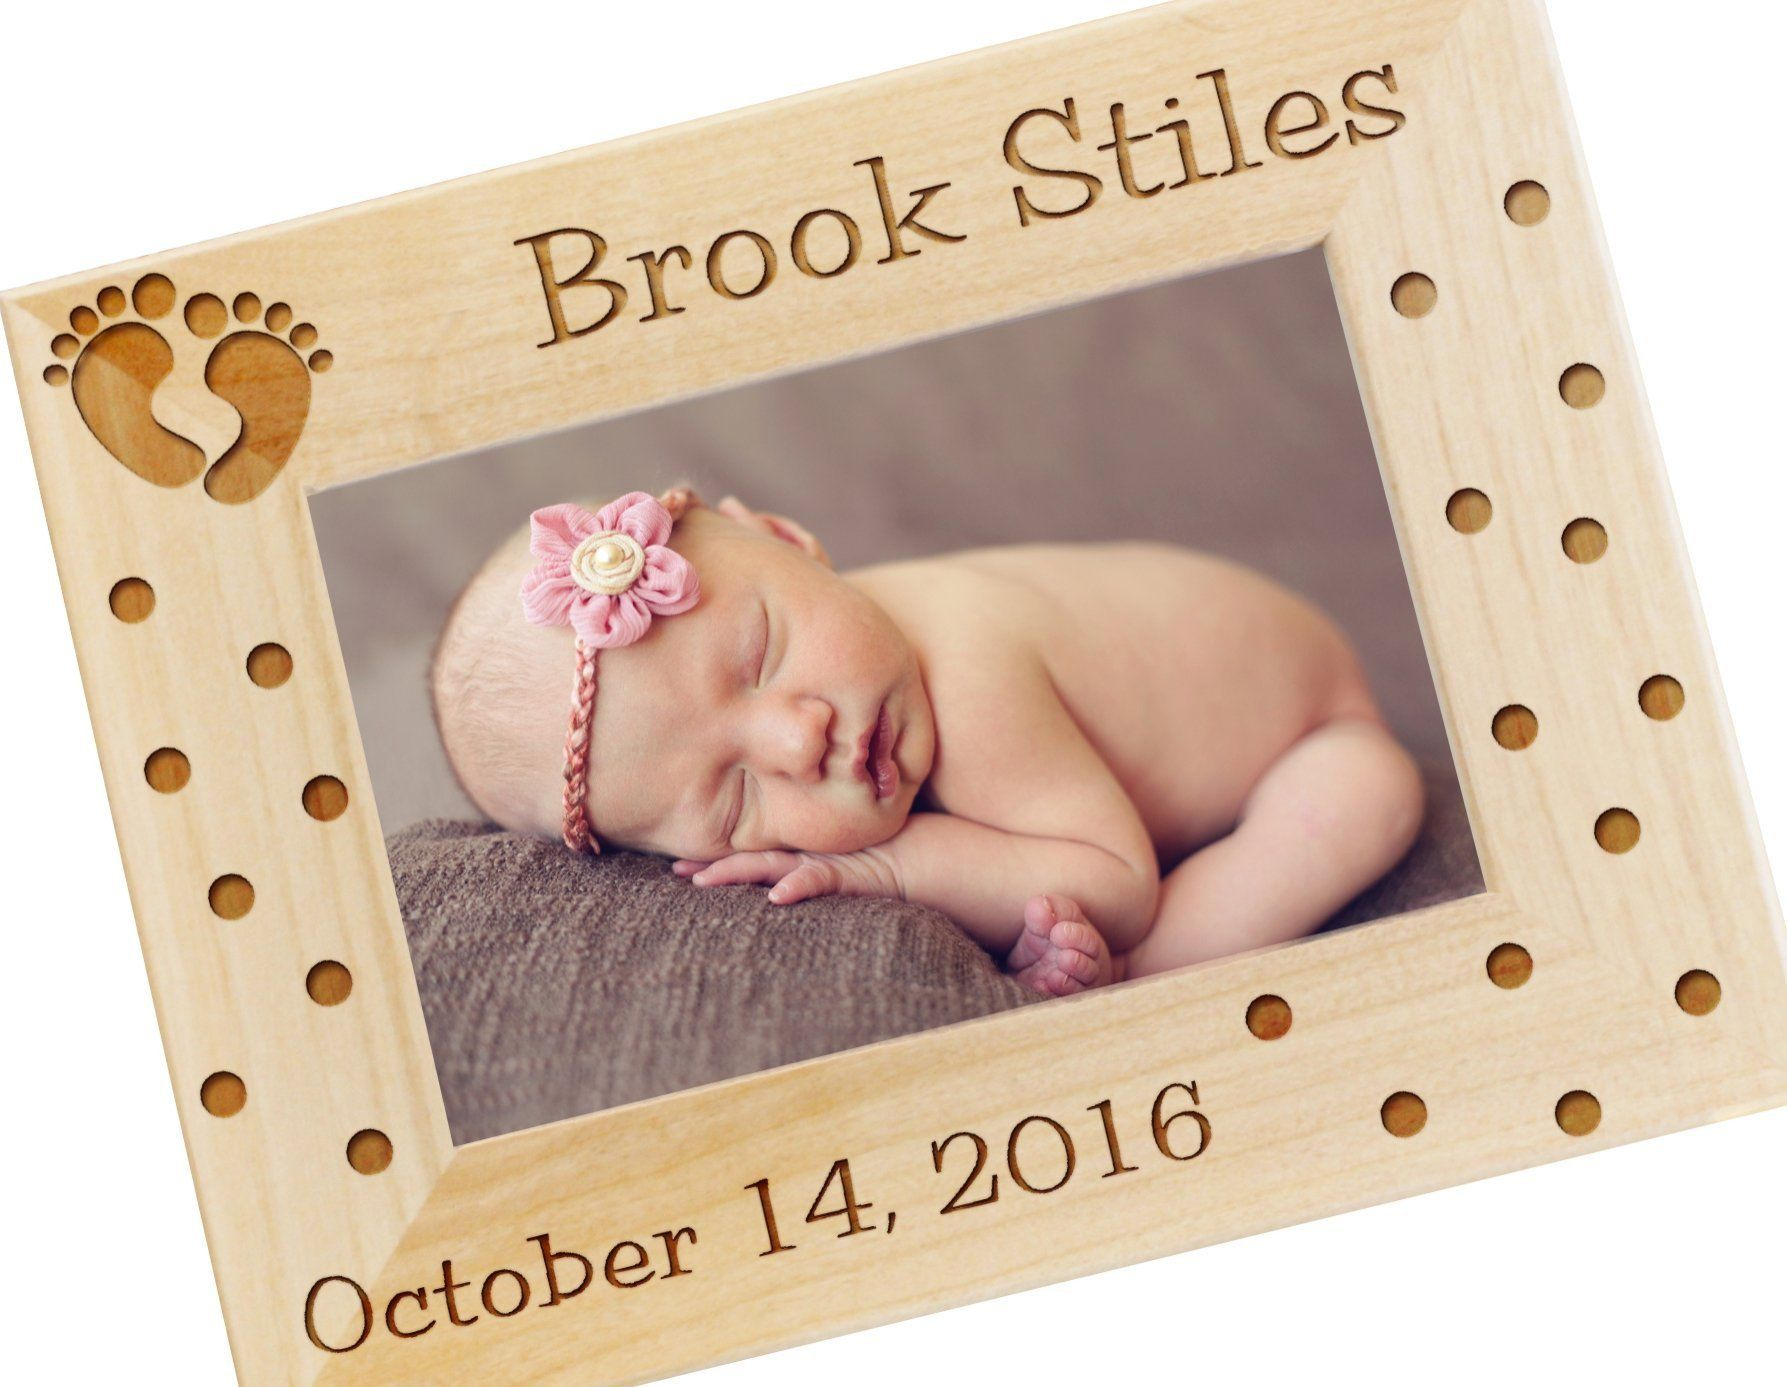 Personalized Newborn Baby Gift Photo Frame - Custom Engraved Wood ...